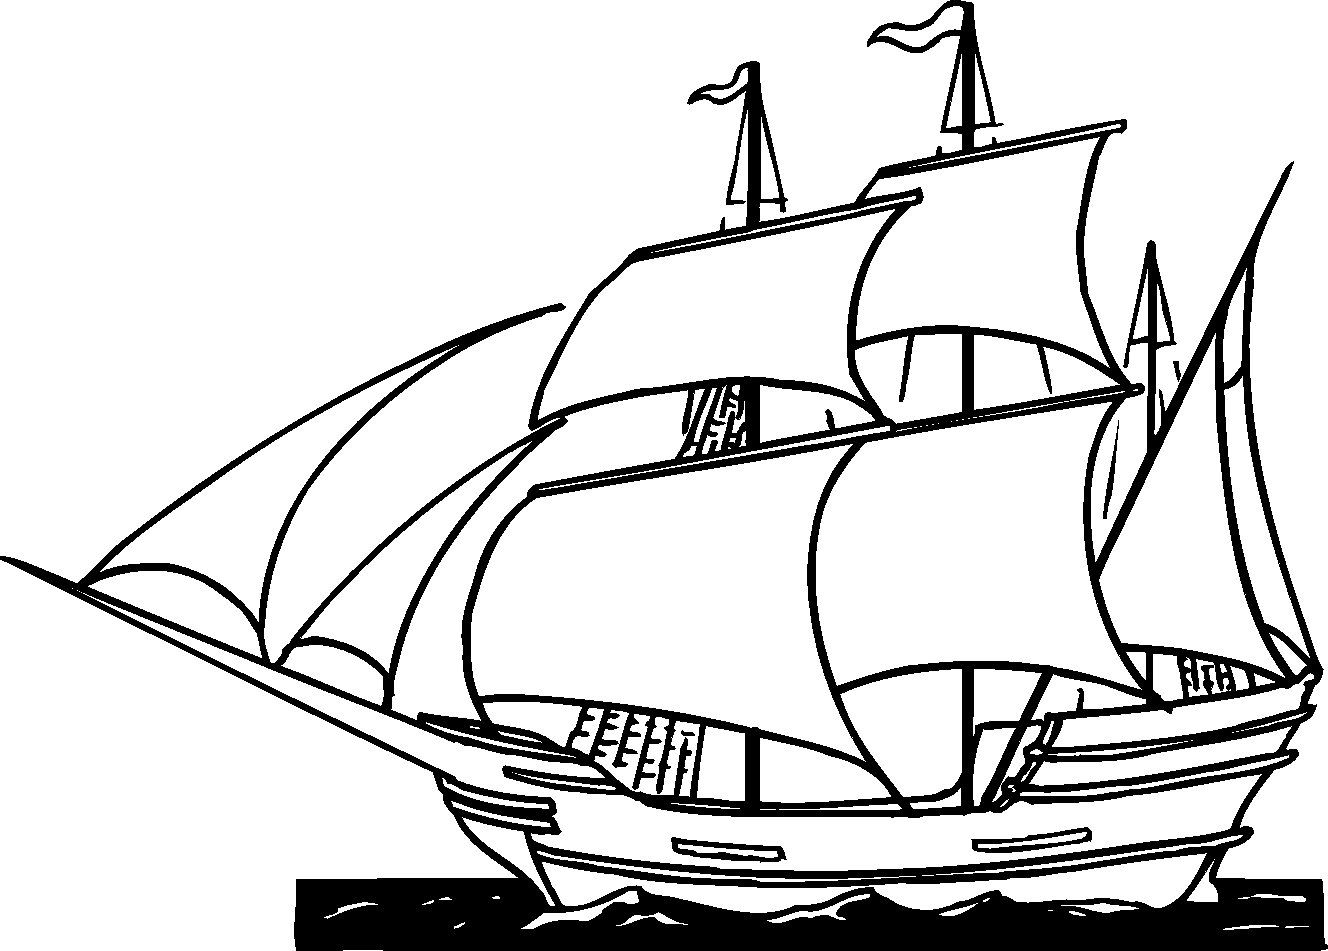 Thanksgiving Coloring Pages Thanksgiving Coloring Pages Pirate Coloring Pages Thanksgiving Coloring Pages Free Thanksgiving Coloring Pages